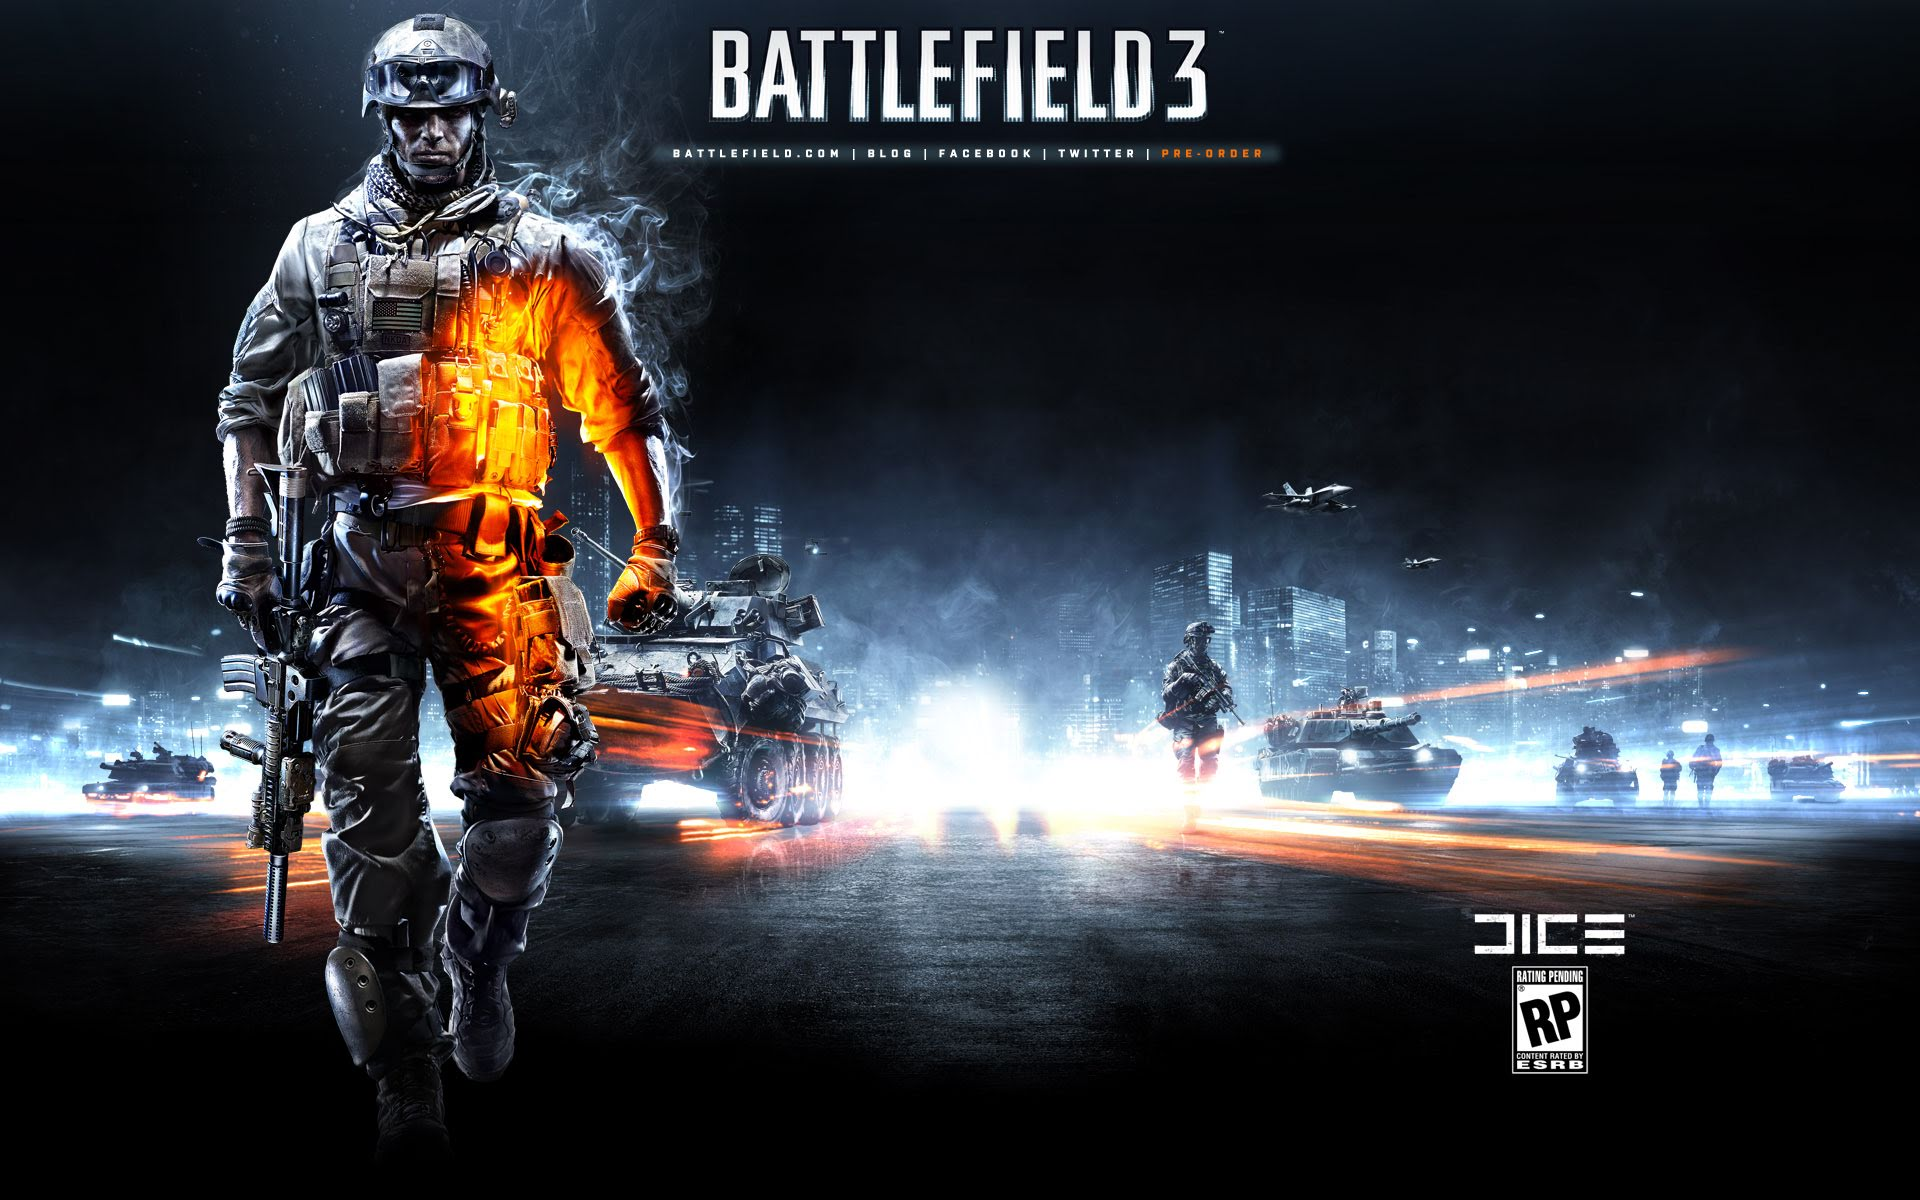 Battlefield 3 Game 878.52 Kb